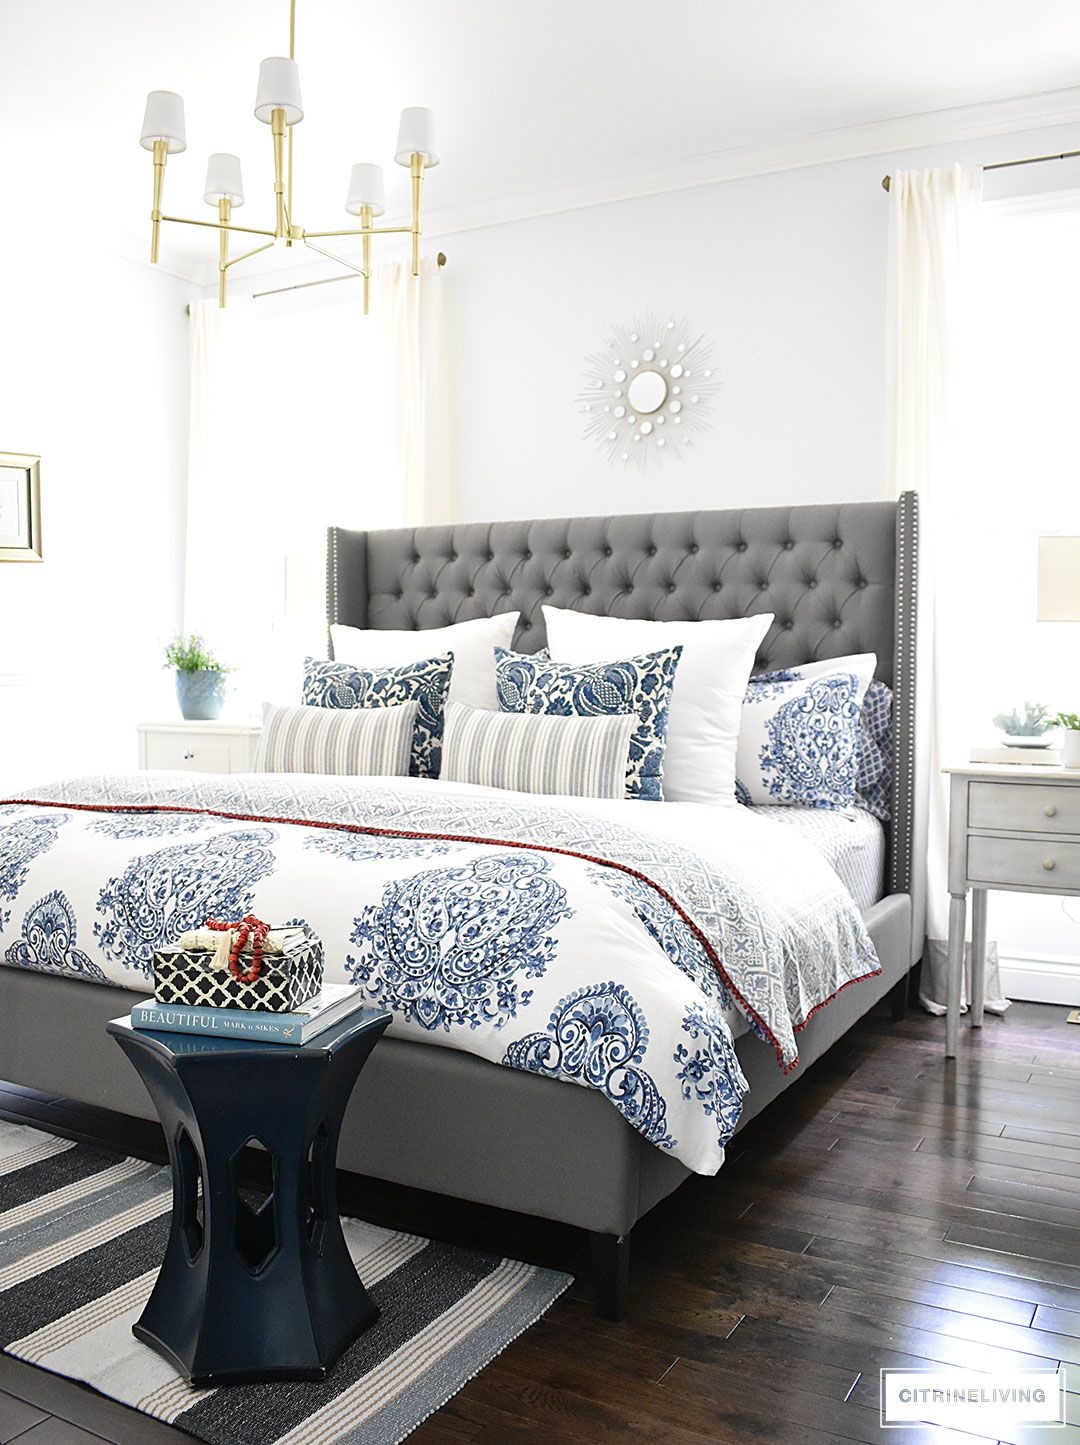 Blue and white summer decorated bedroom with layers of bold pattern